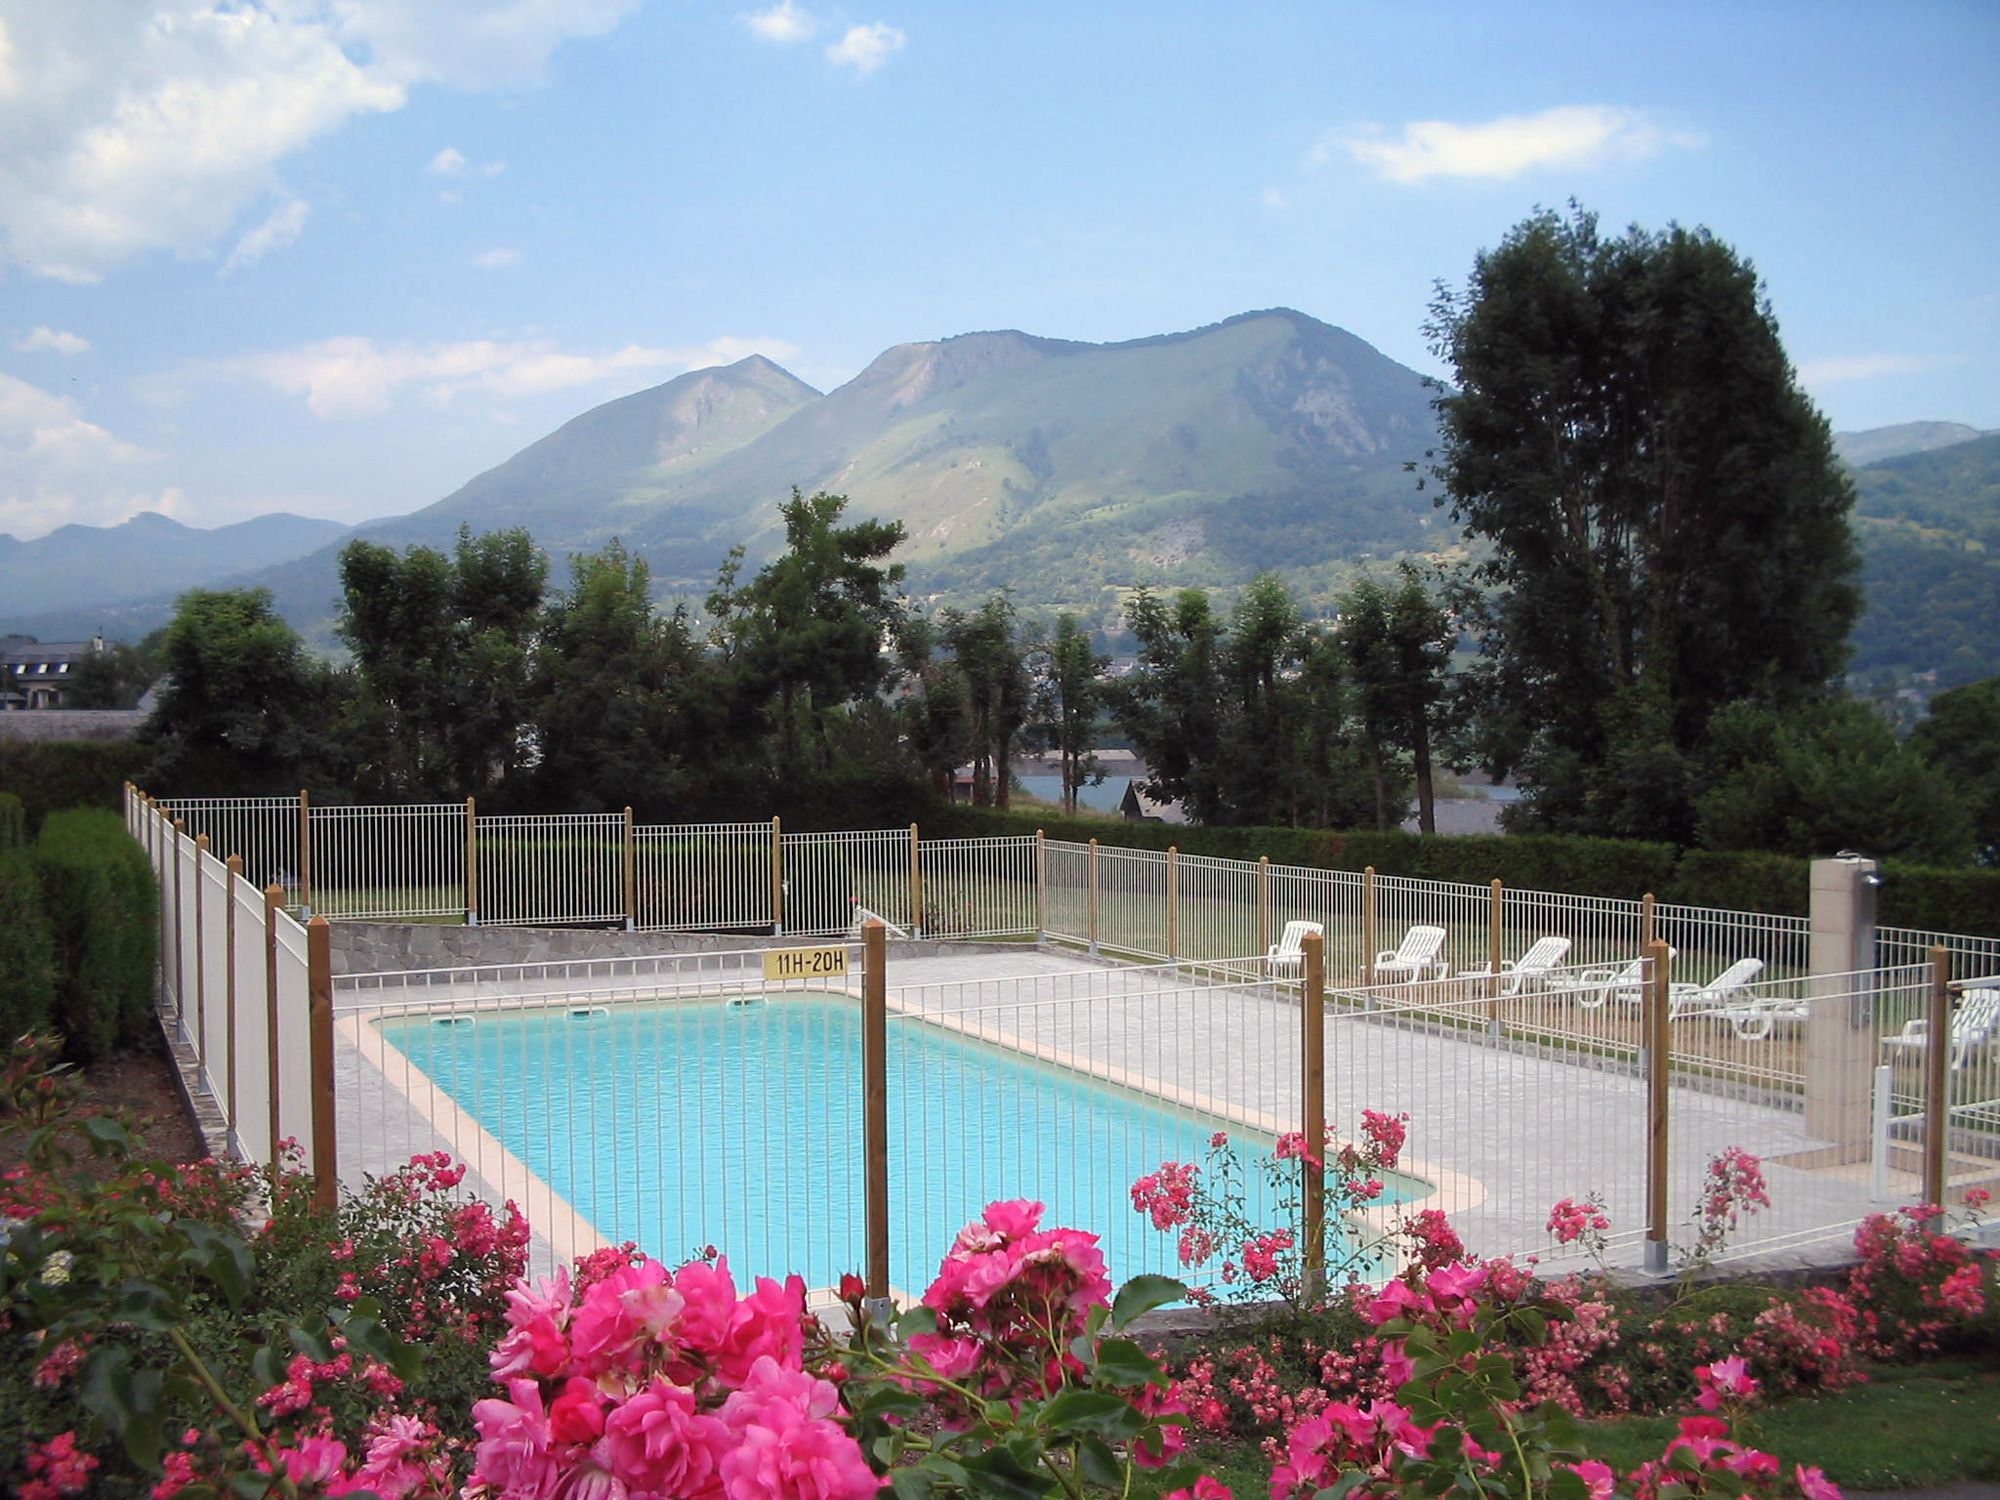 Camping du lac argel s gazost galerie photo for Camping haute pyrenees avec piscine